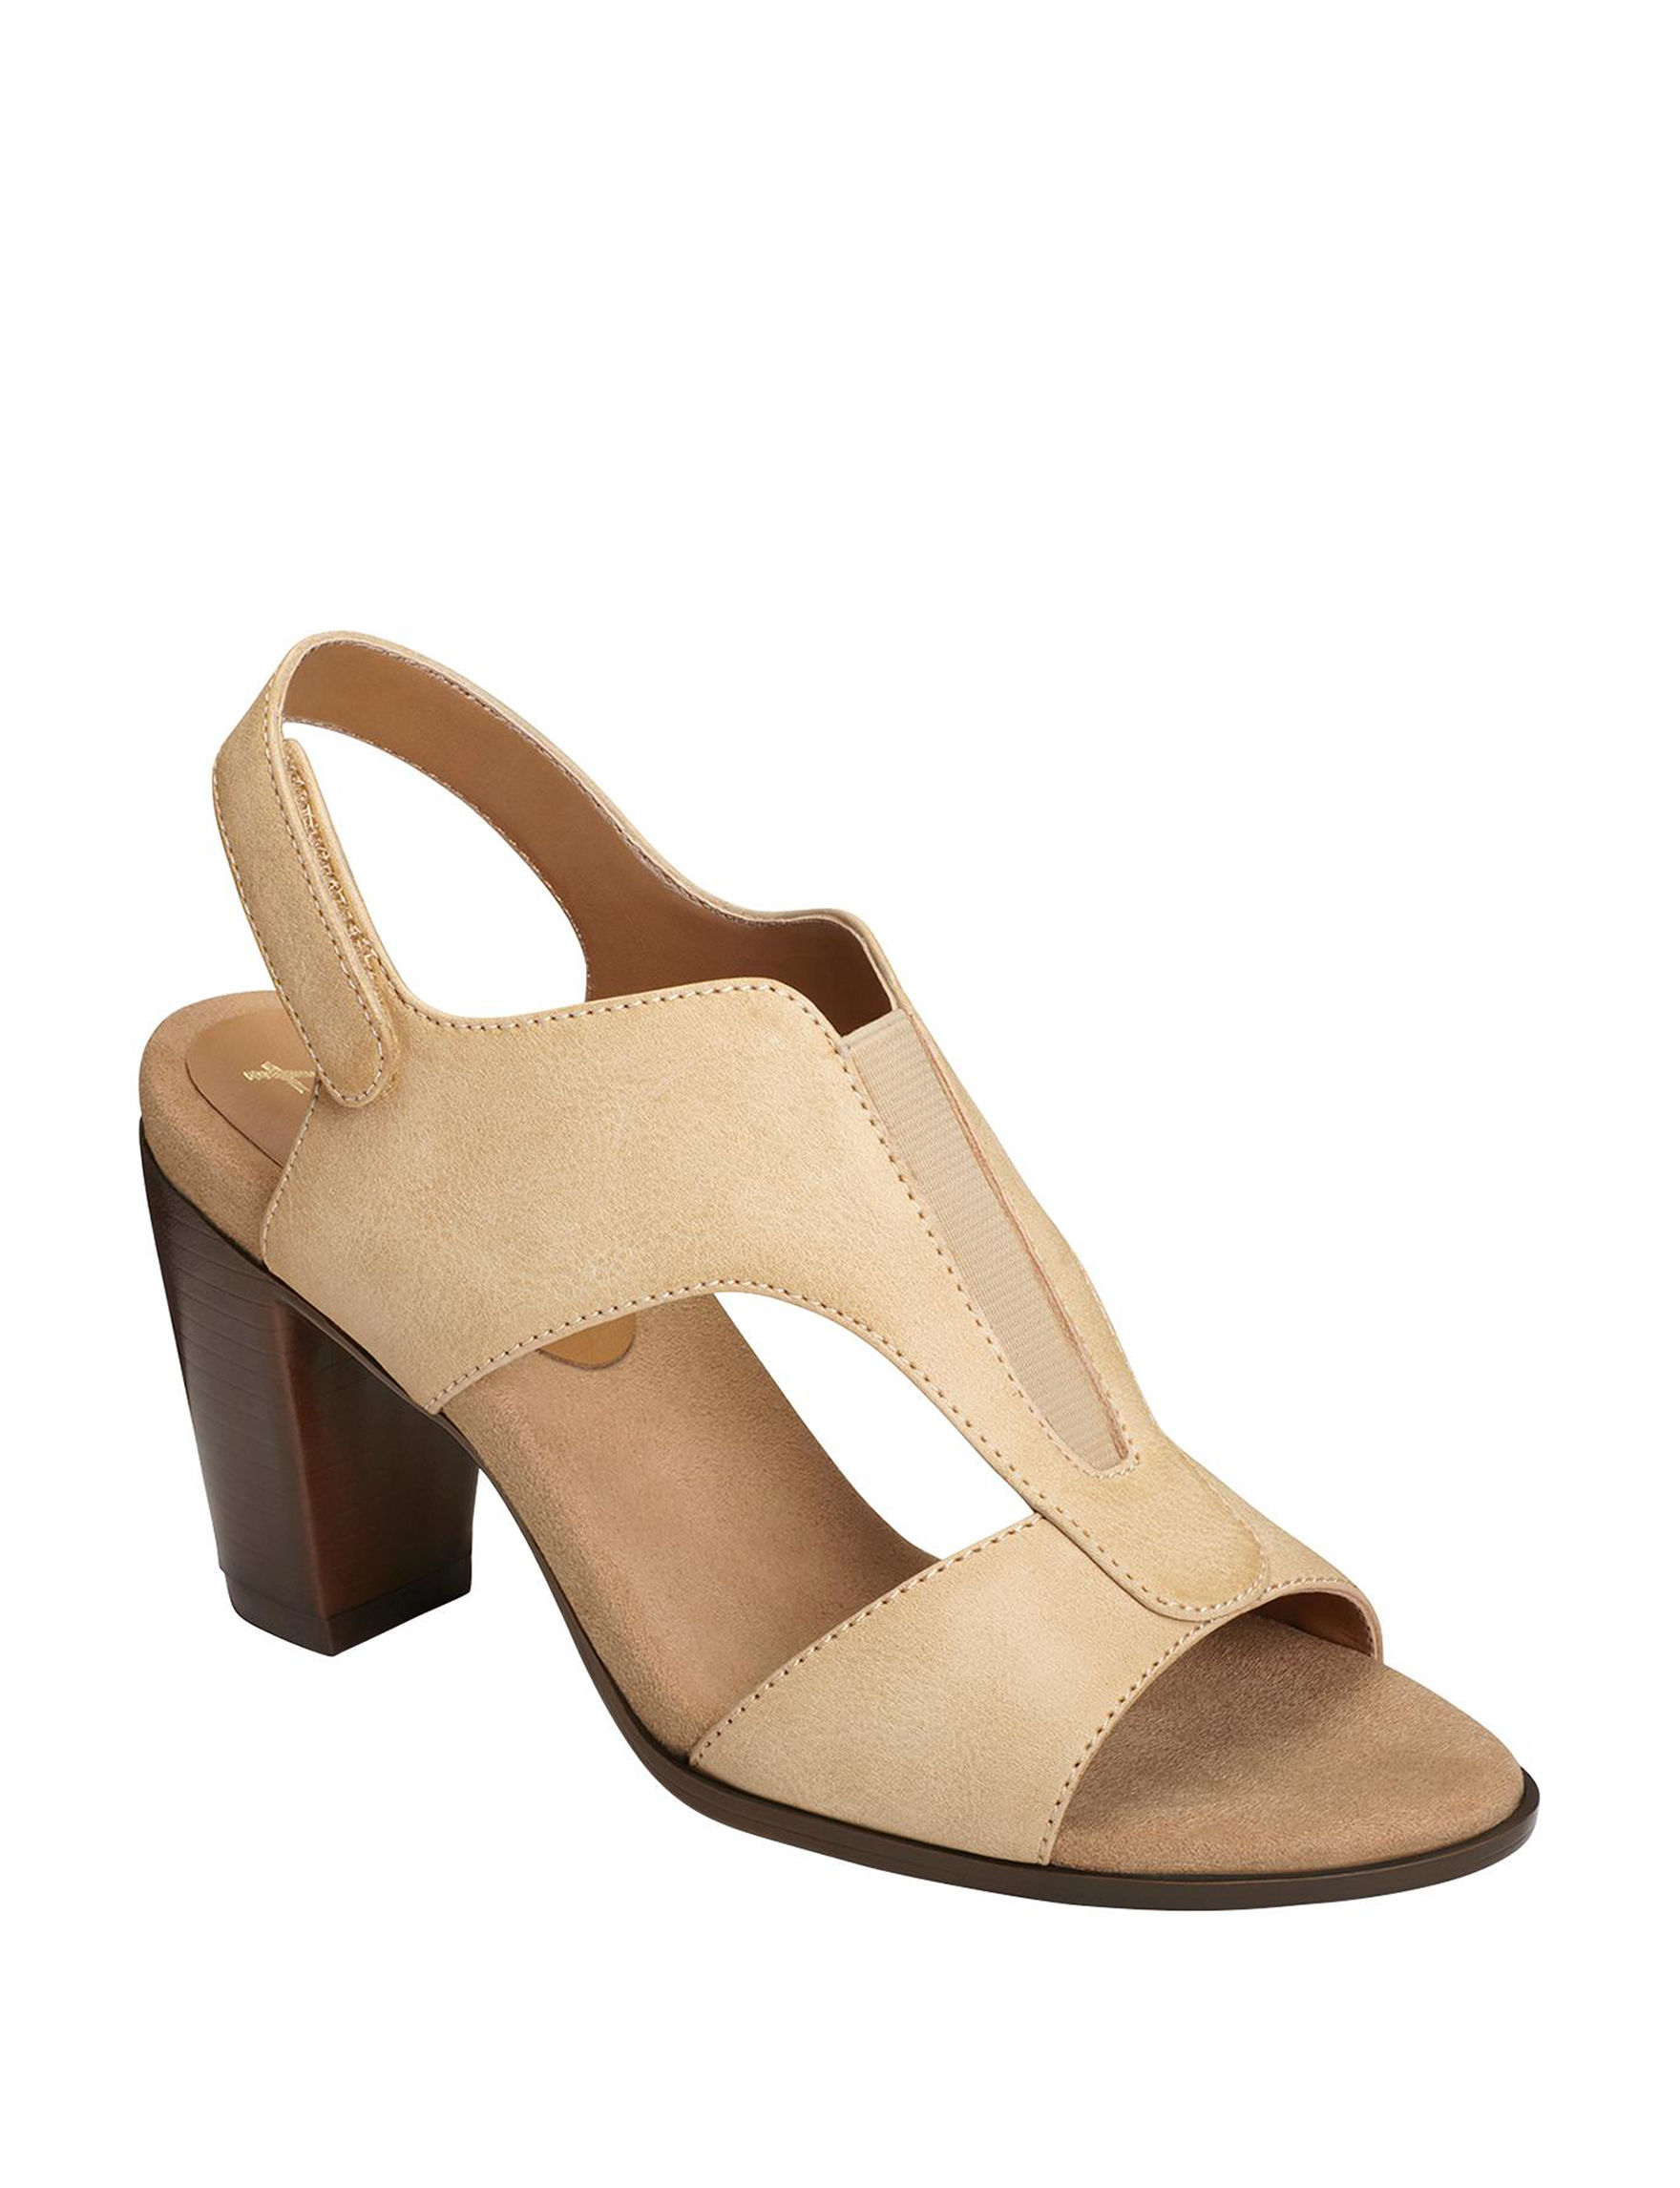 A2 by Aerosoles Tan Heeled Sandals